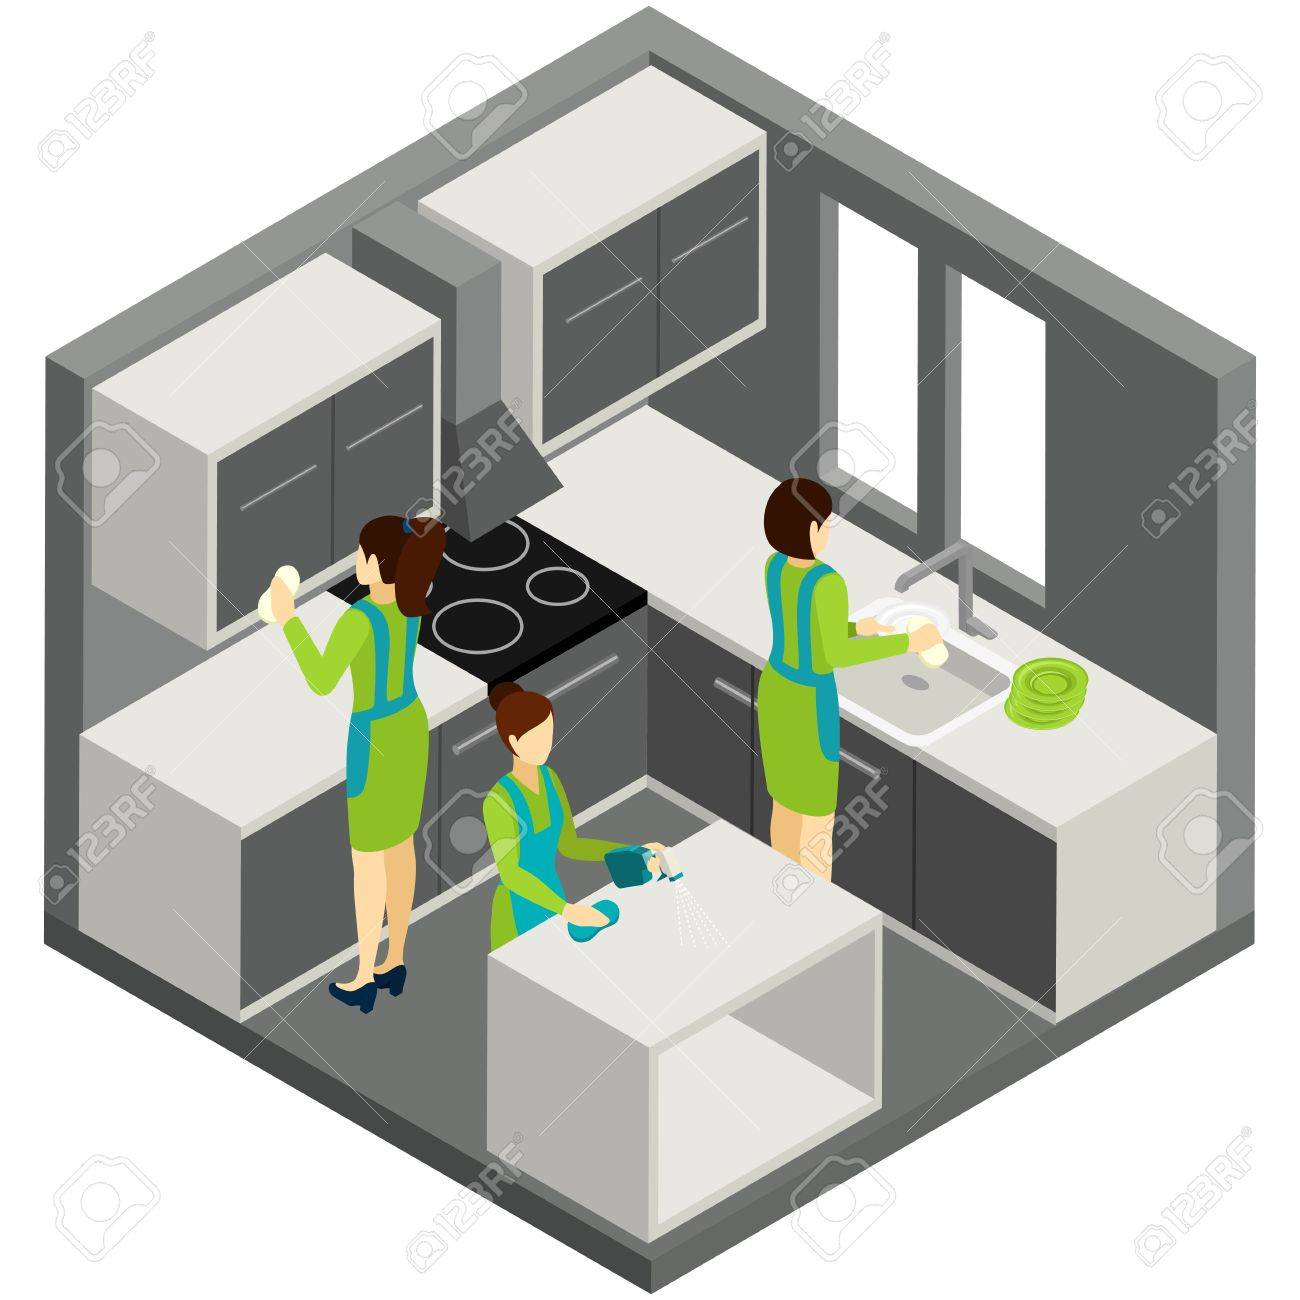 Professional residential maids in green uniforms providing quality kitchen cleaning services abstract isometric pictogram banner vector illustration - 51154666